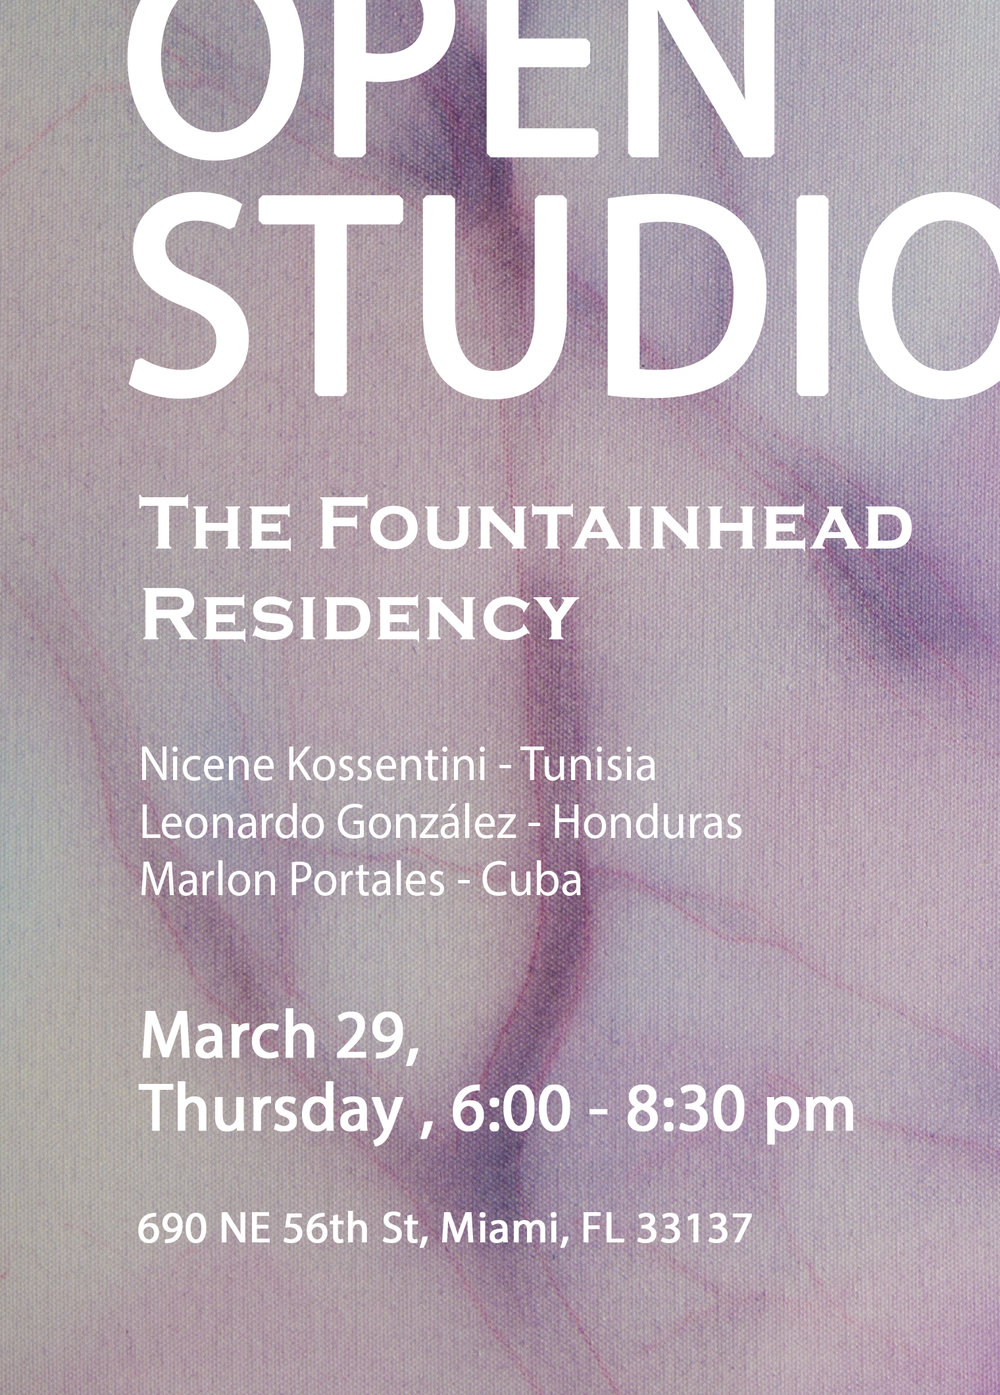 Invitation - Open studio - March 29.jpg